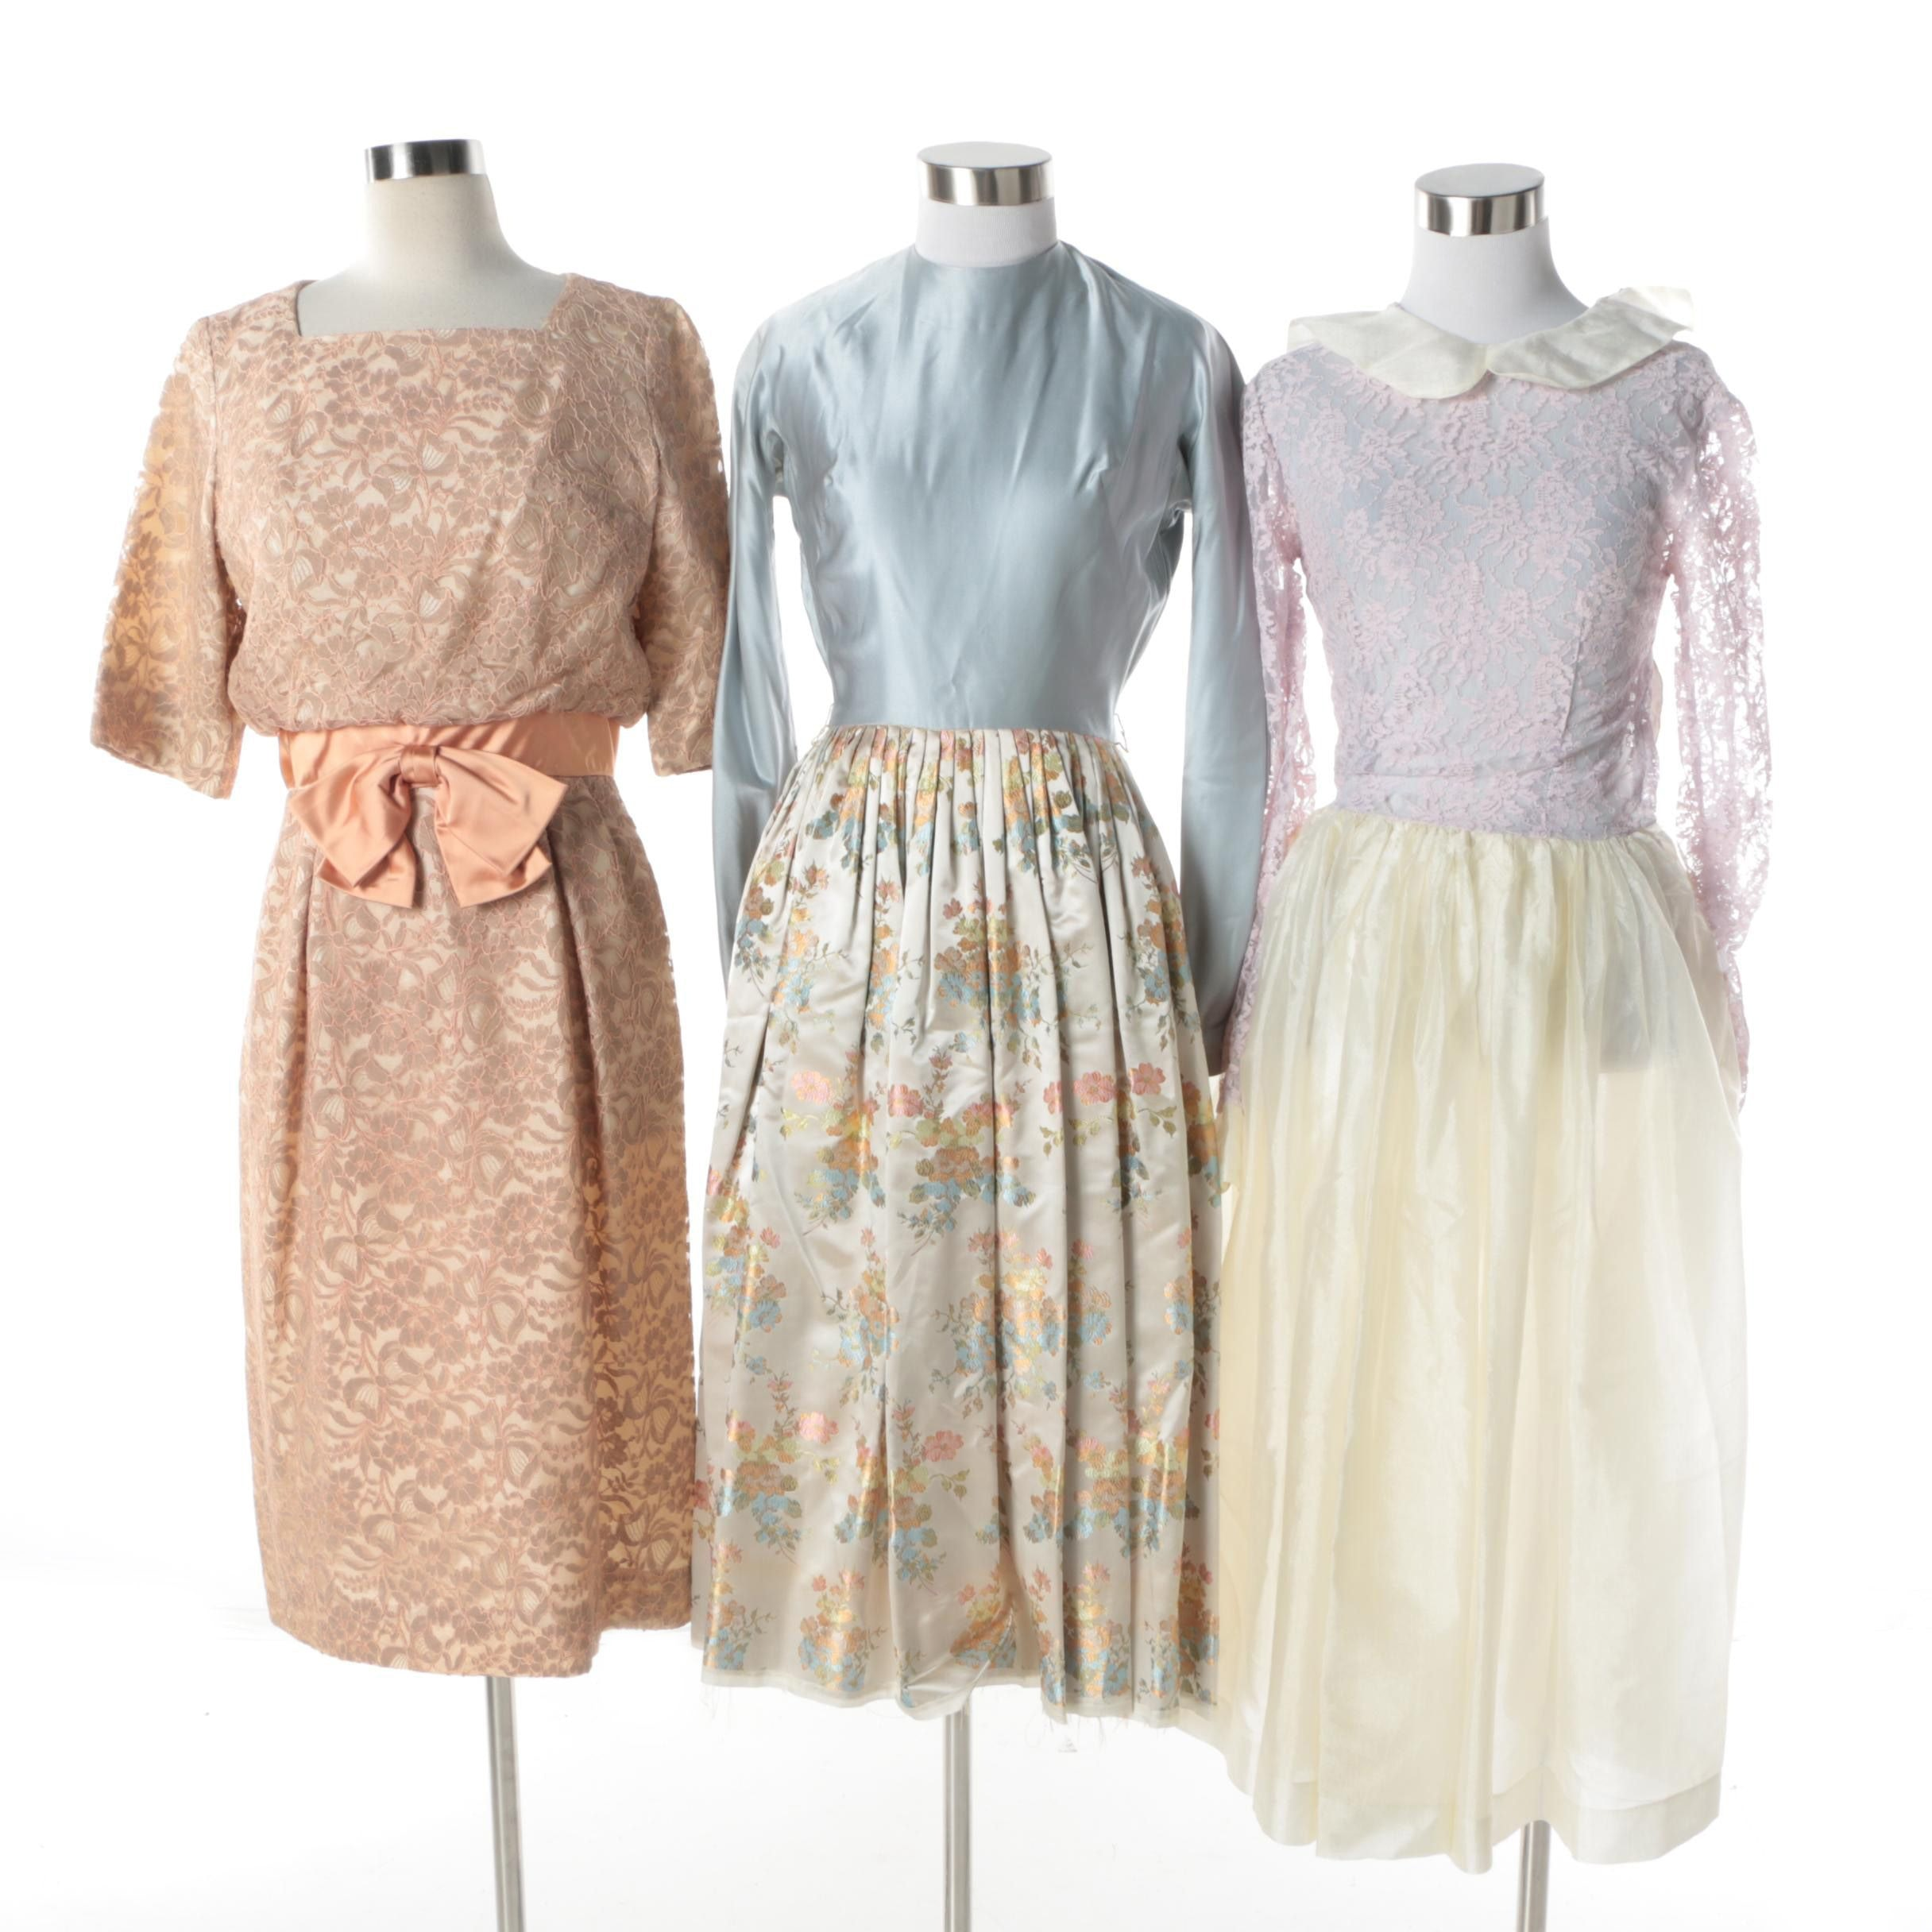 Circa 1960s Vintage Floral, Lace, and Brocade Cocktail Dresses